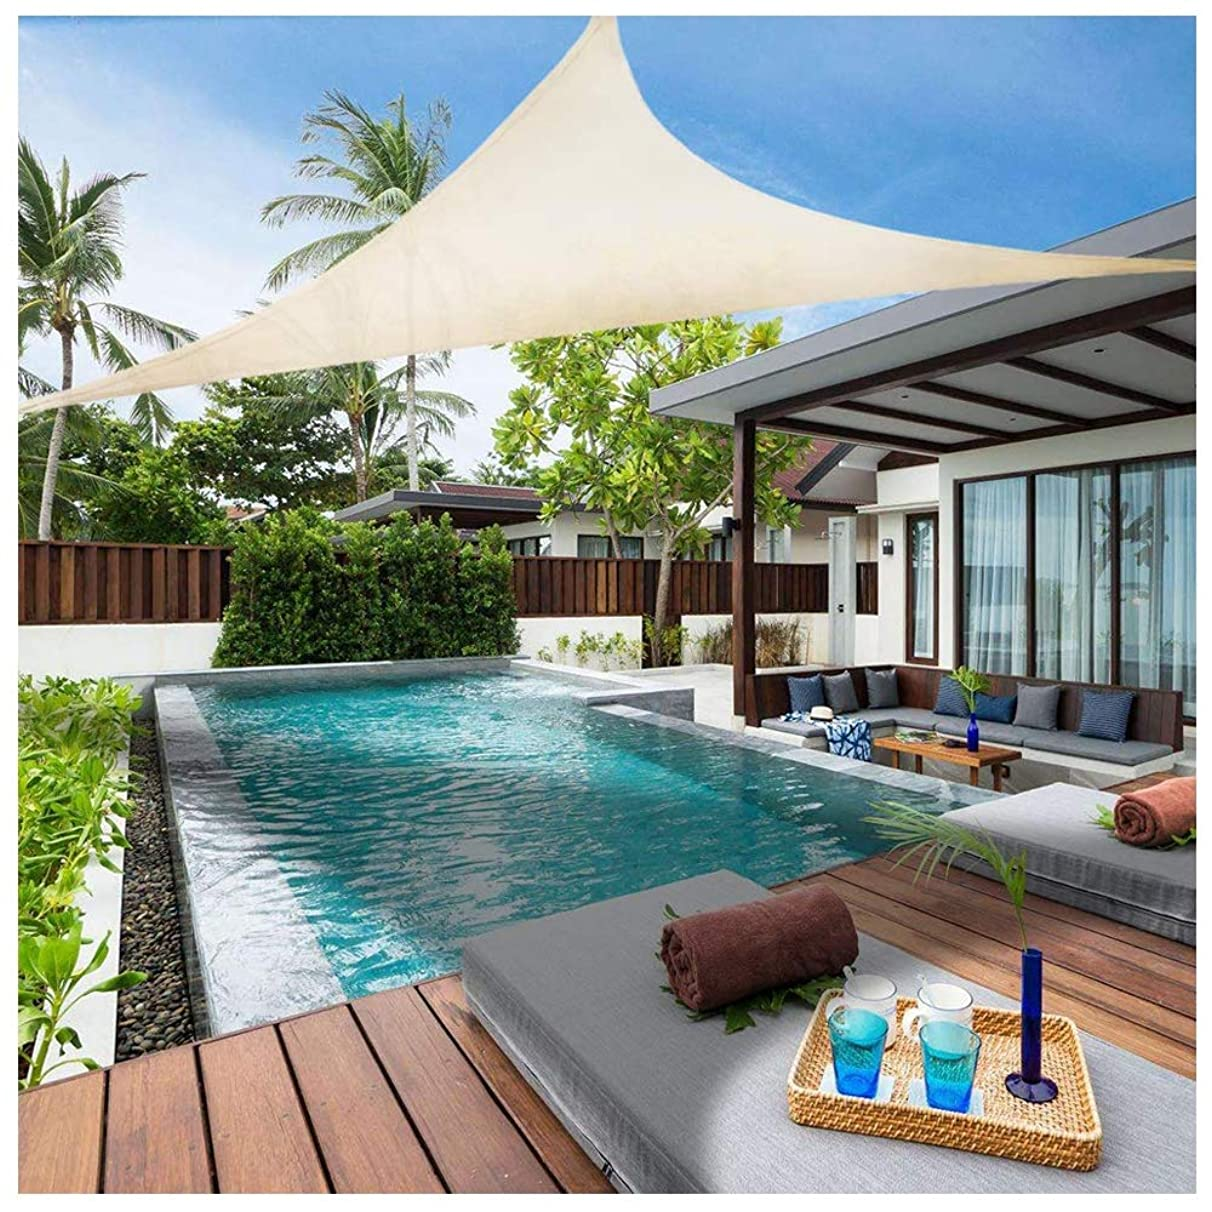 Awnings 6.5'x 6.5'x6.5' Garden Waterproof Mildew Shade Sail 95% Uv Protection Triangle for Garden Pool Terrace Custom Size pai614965